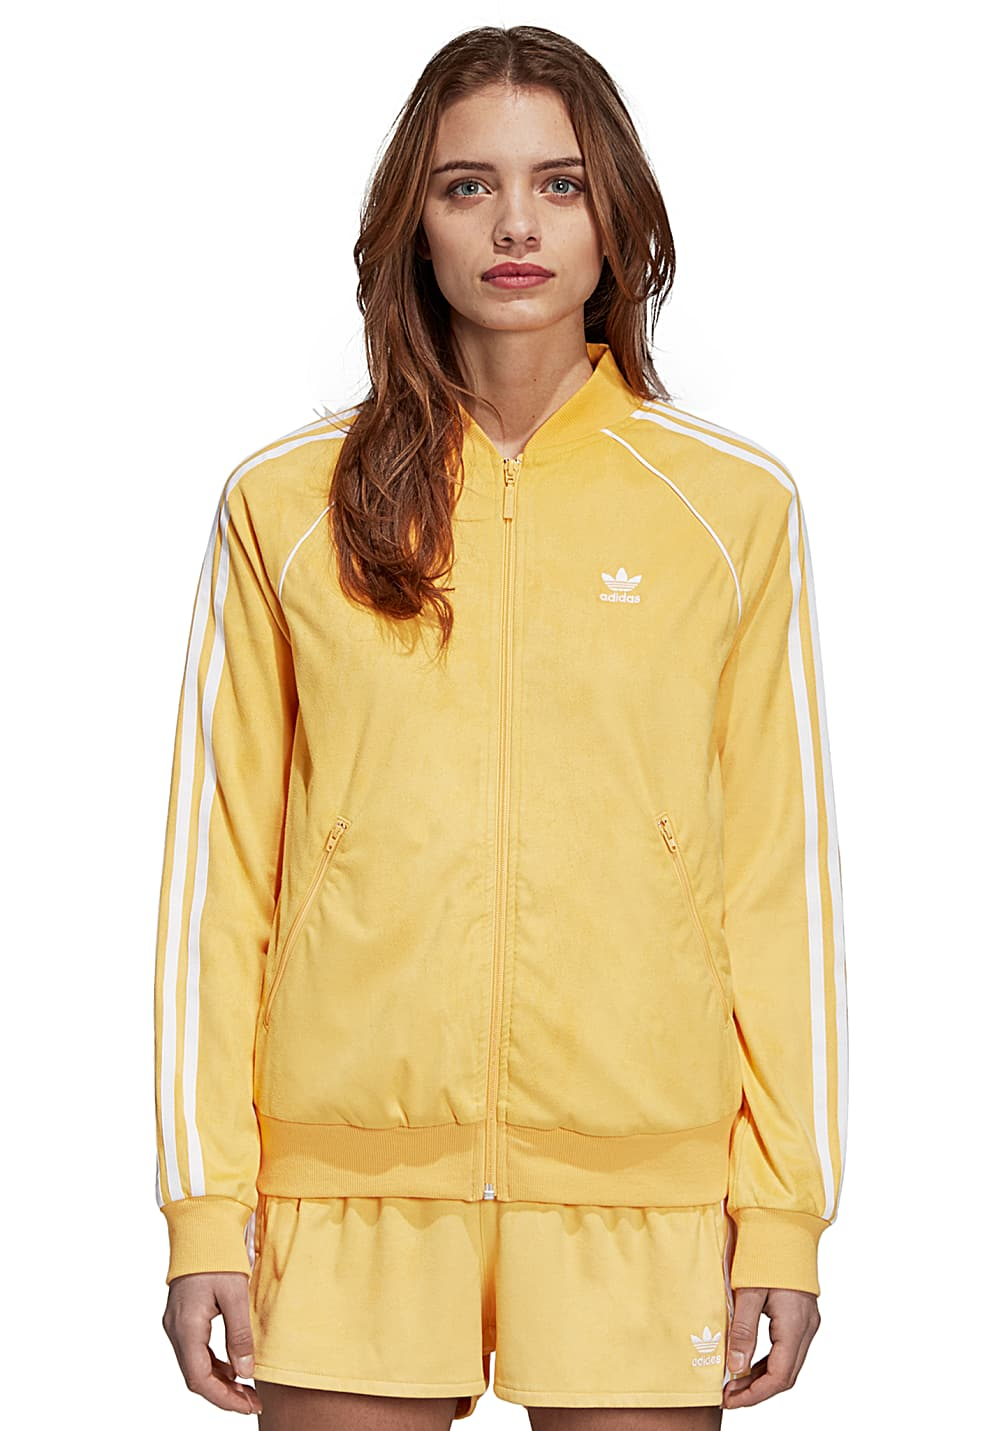 adidas Originals SST - Trainingsjacke für Damen - Gelb